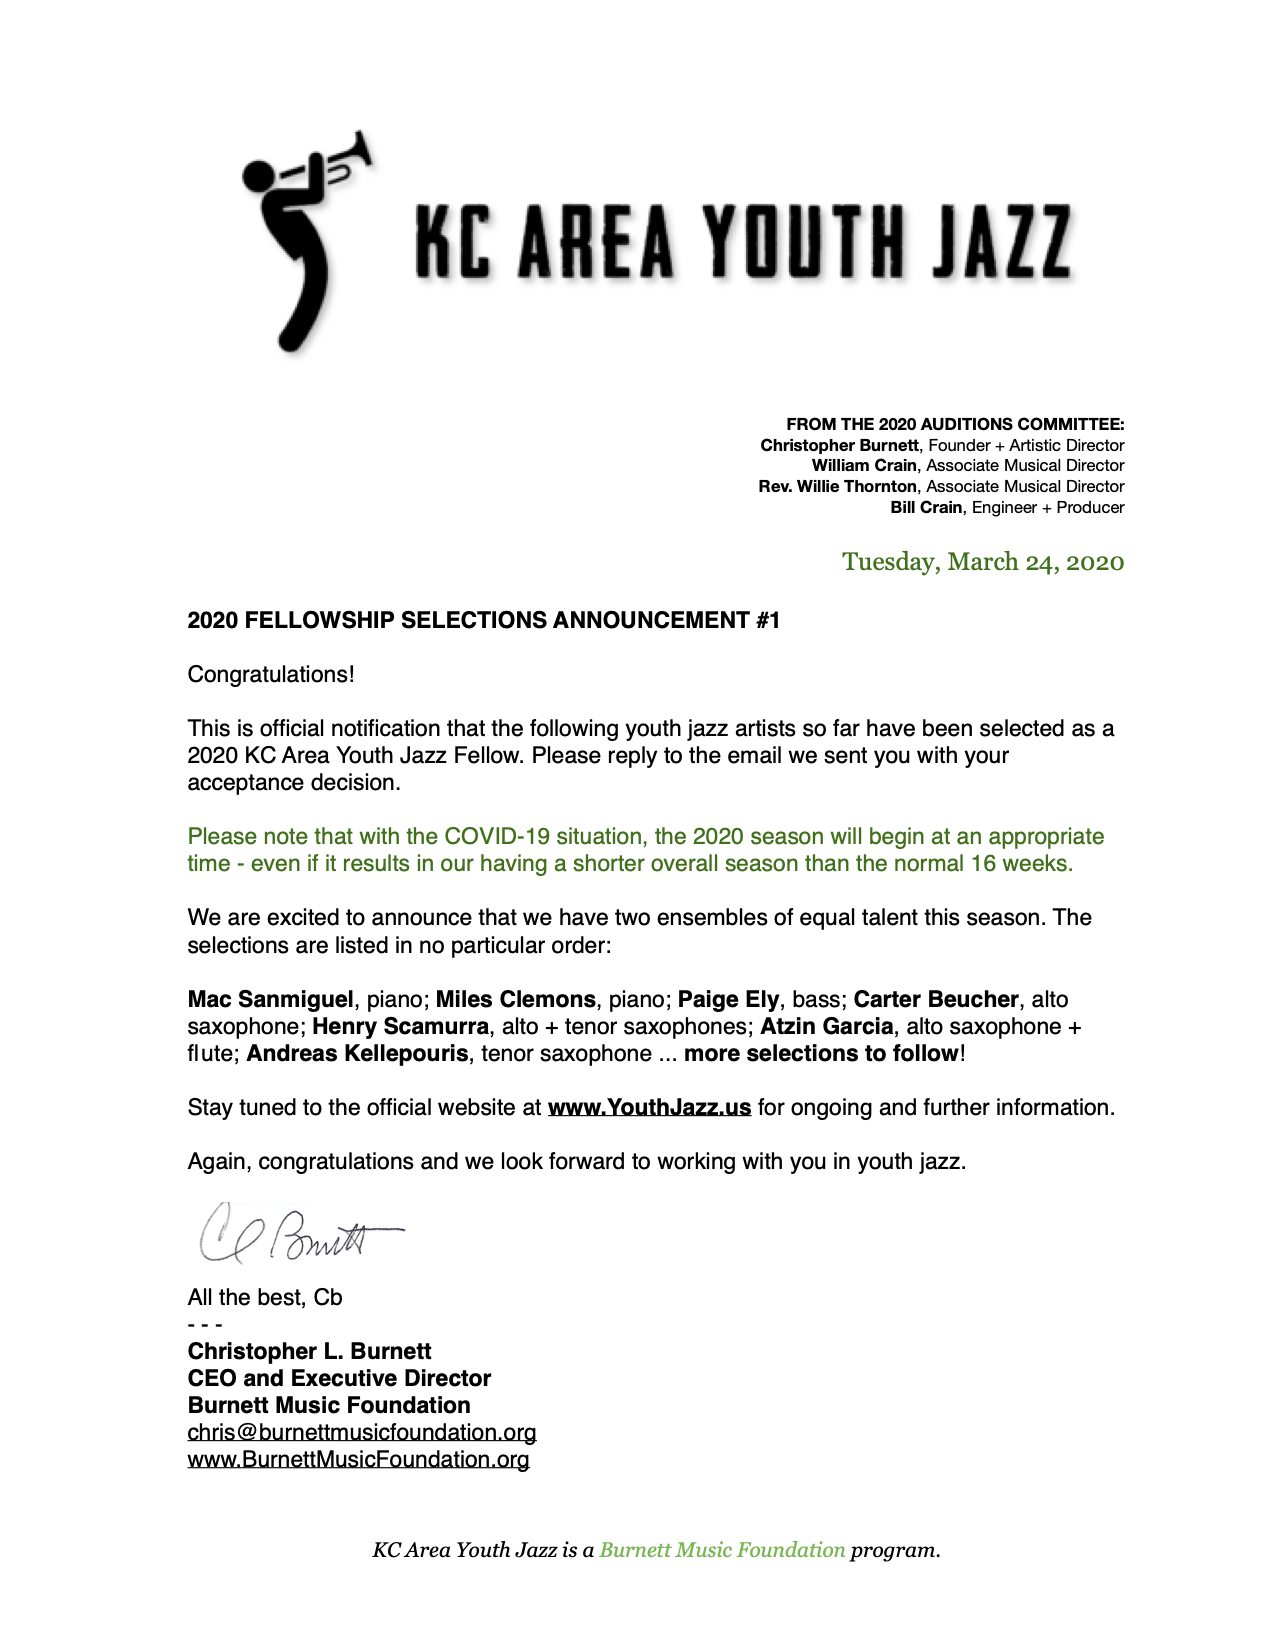 [DOWNLOAD PDF OF THIS LETTER]